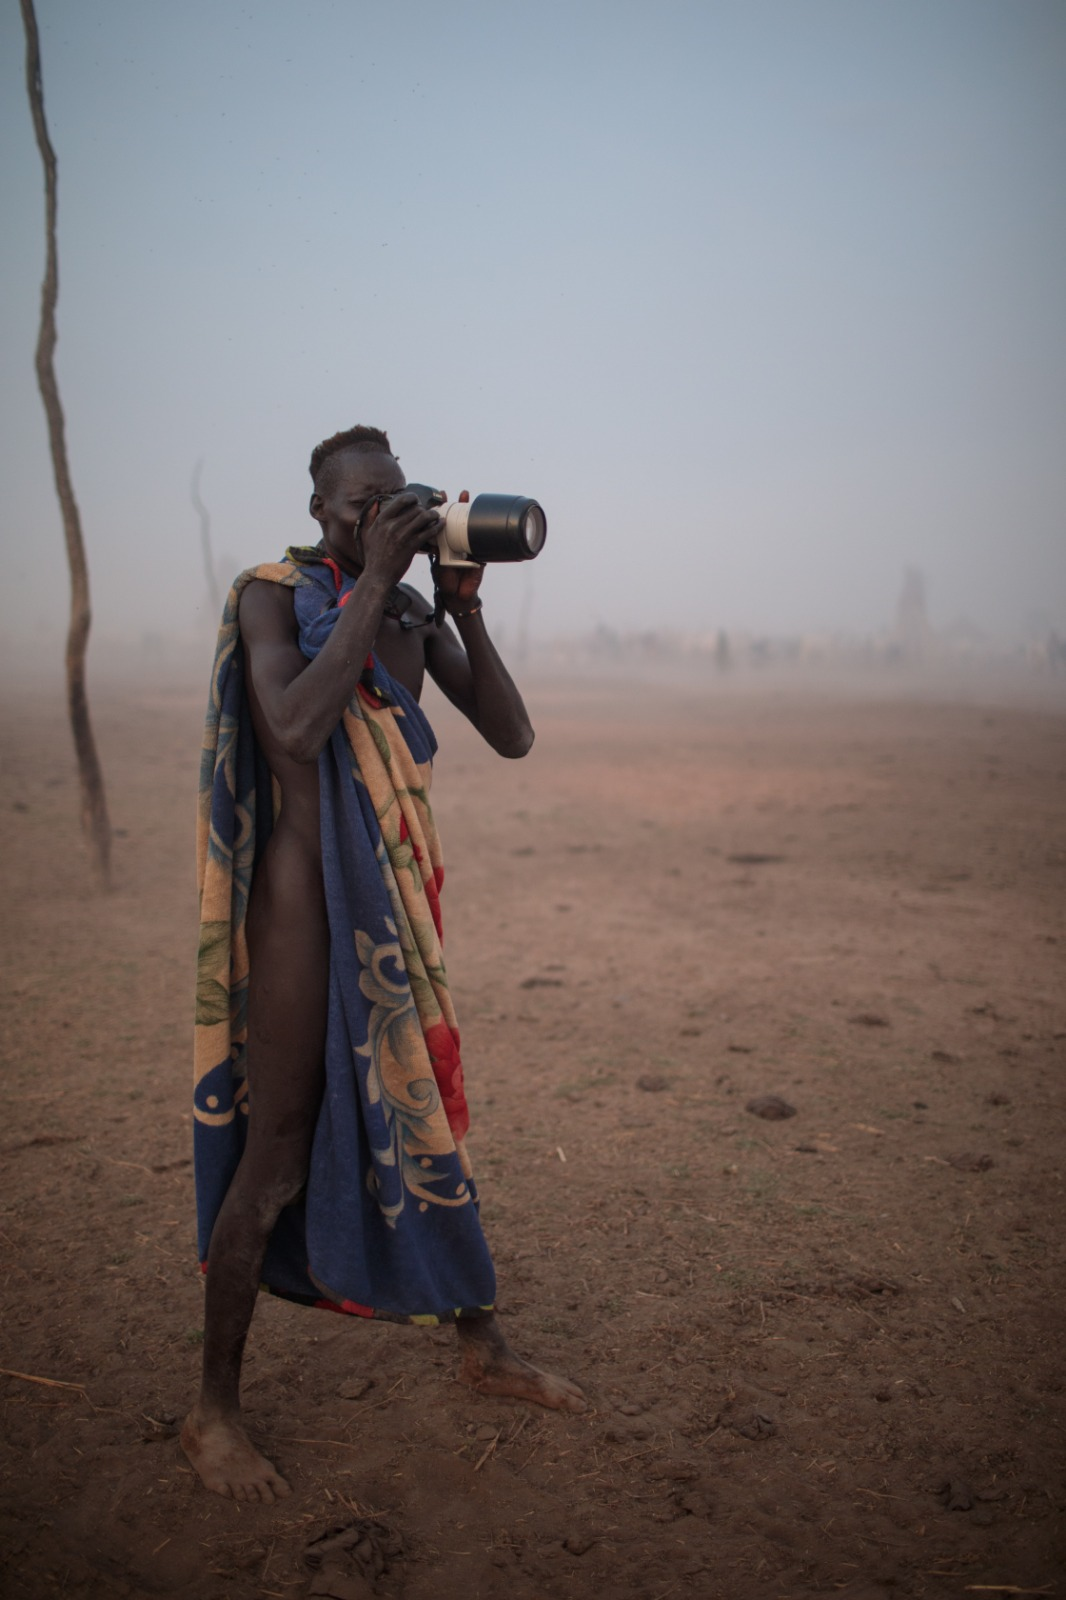 Bruno Feder on south Sudan beyond conflict – Athena Journal